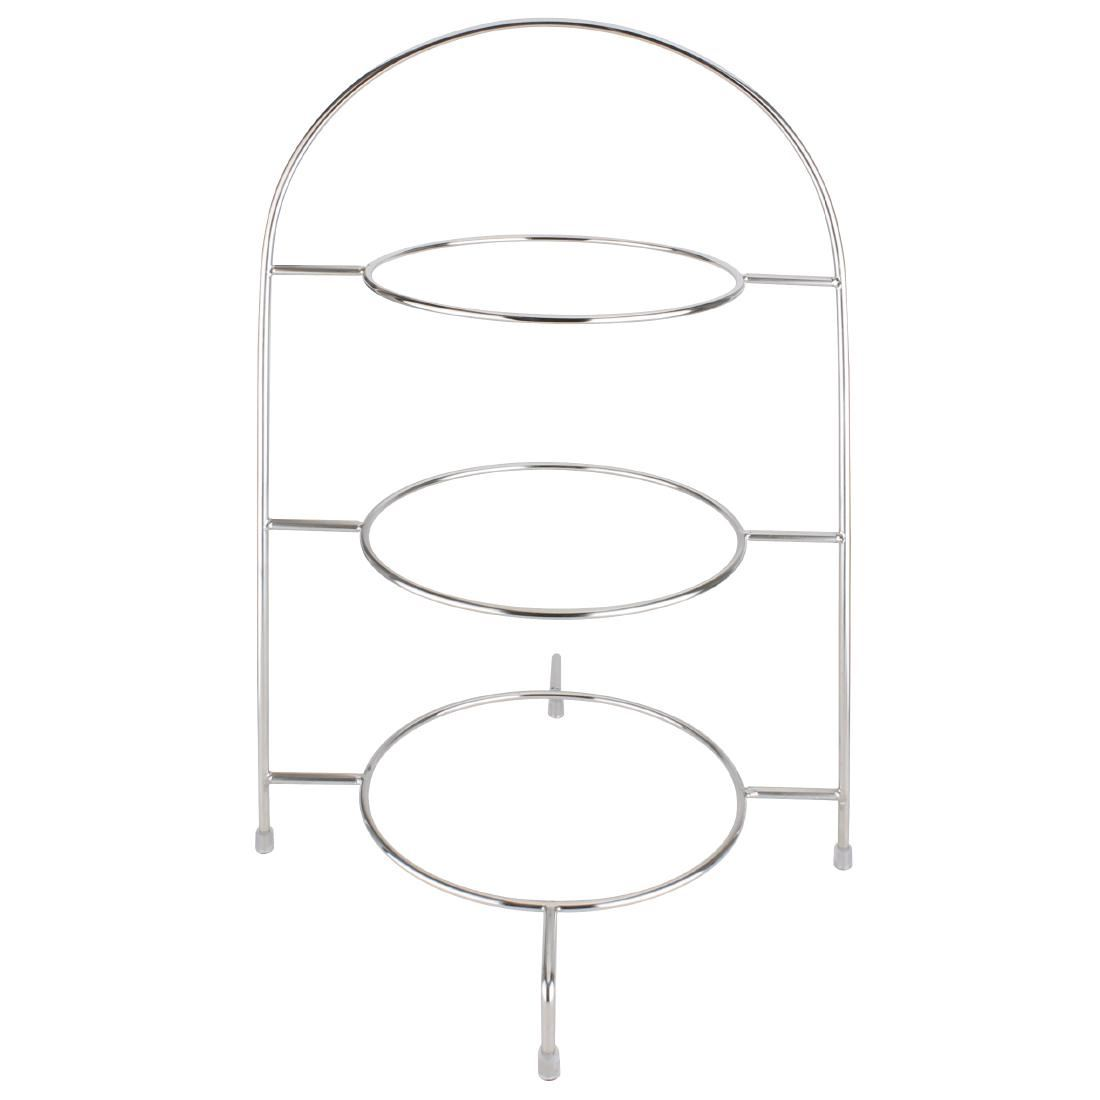 Olympia Afternoon Tea Stand for Plates Up To 267mm Chrome ...  sc 1 st  eBay & Olympia Afternoon Tea Stand for Plates Up To 267mm Chrome   eBay